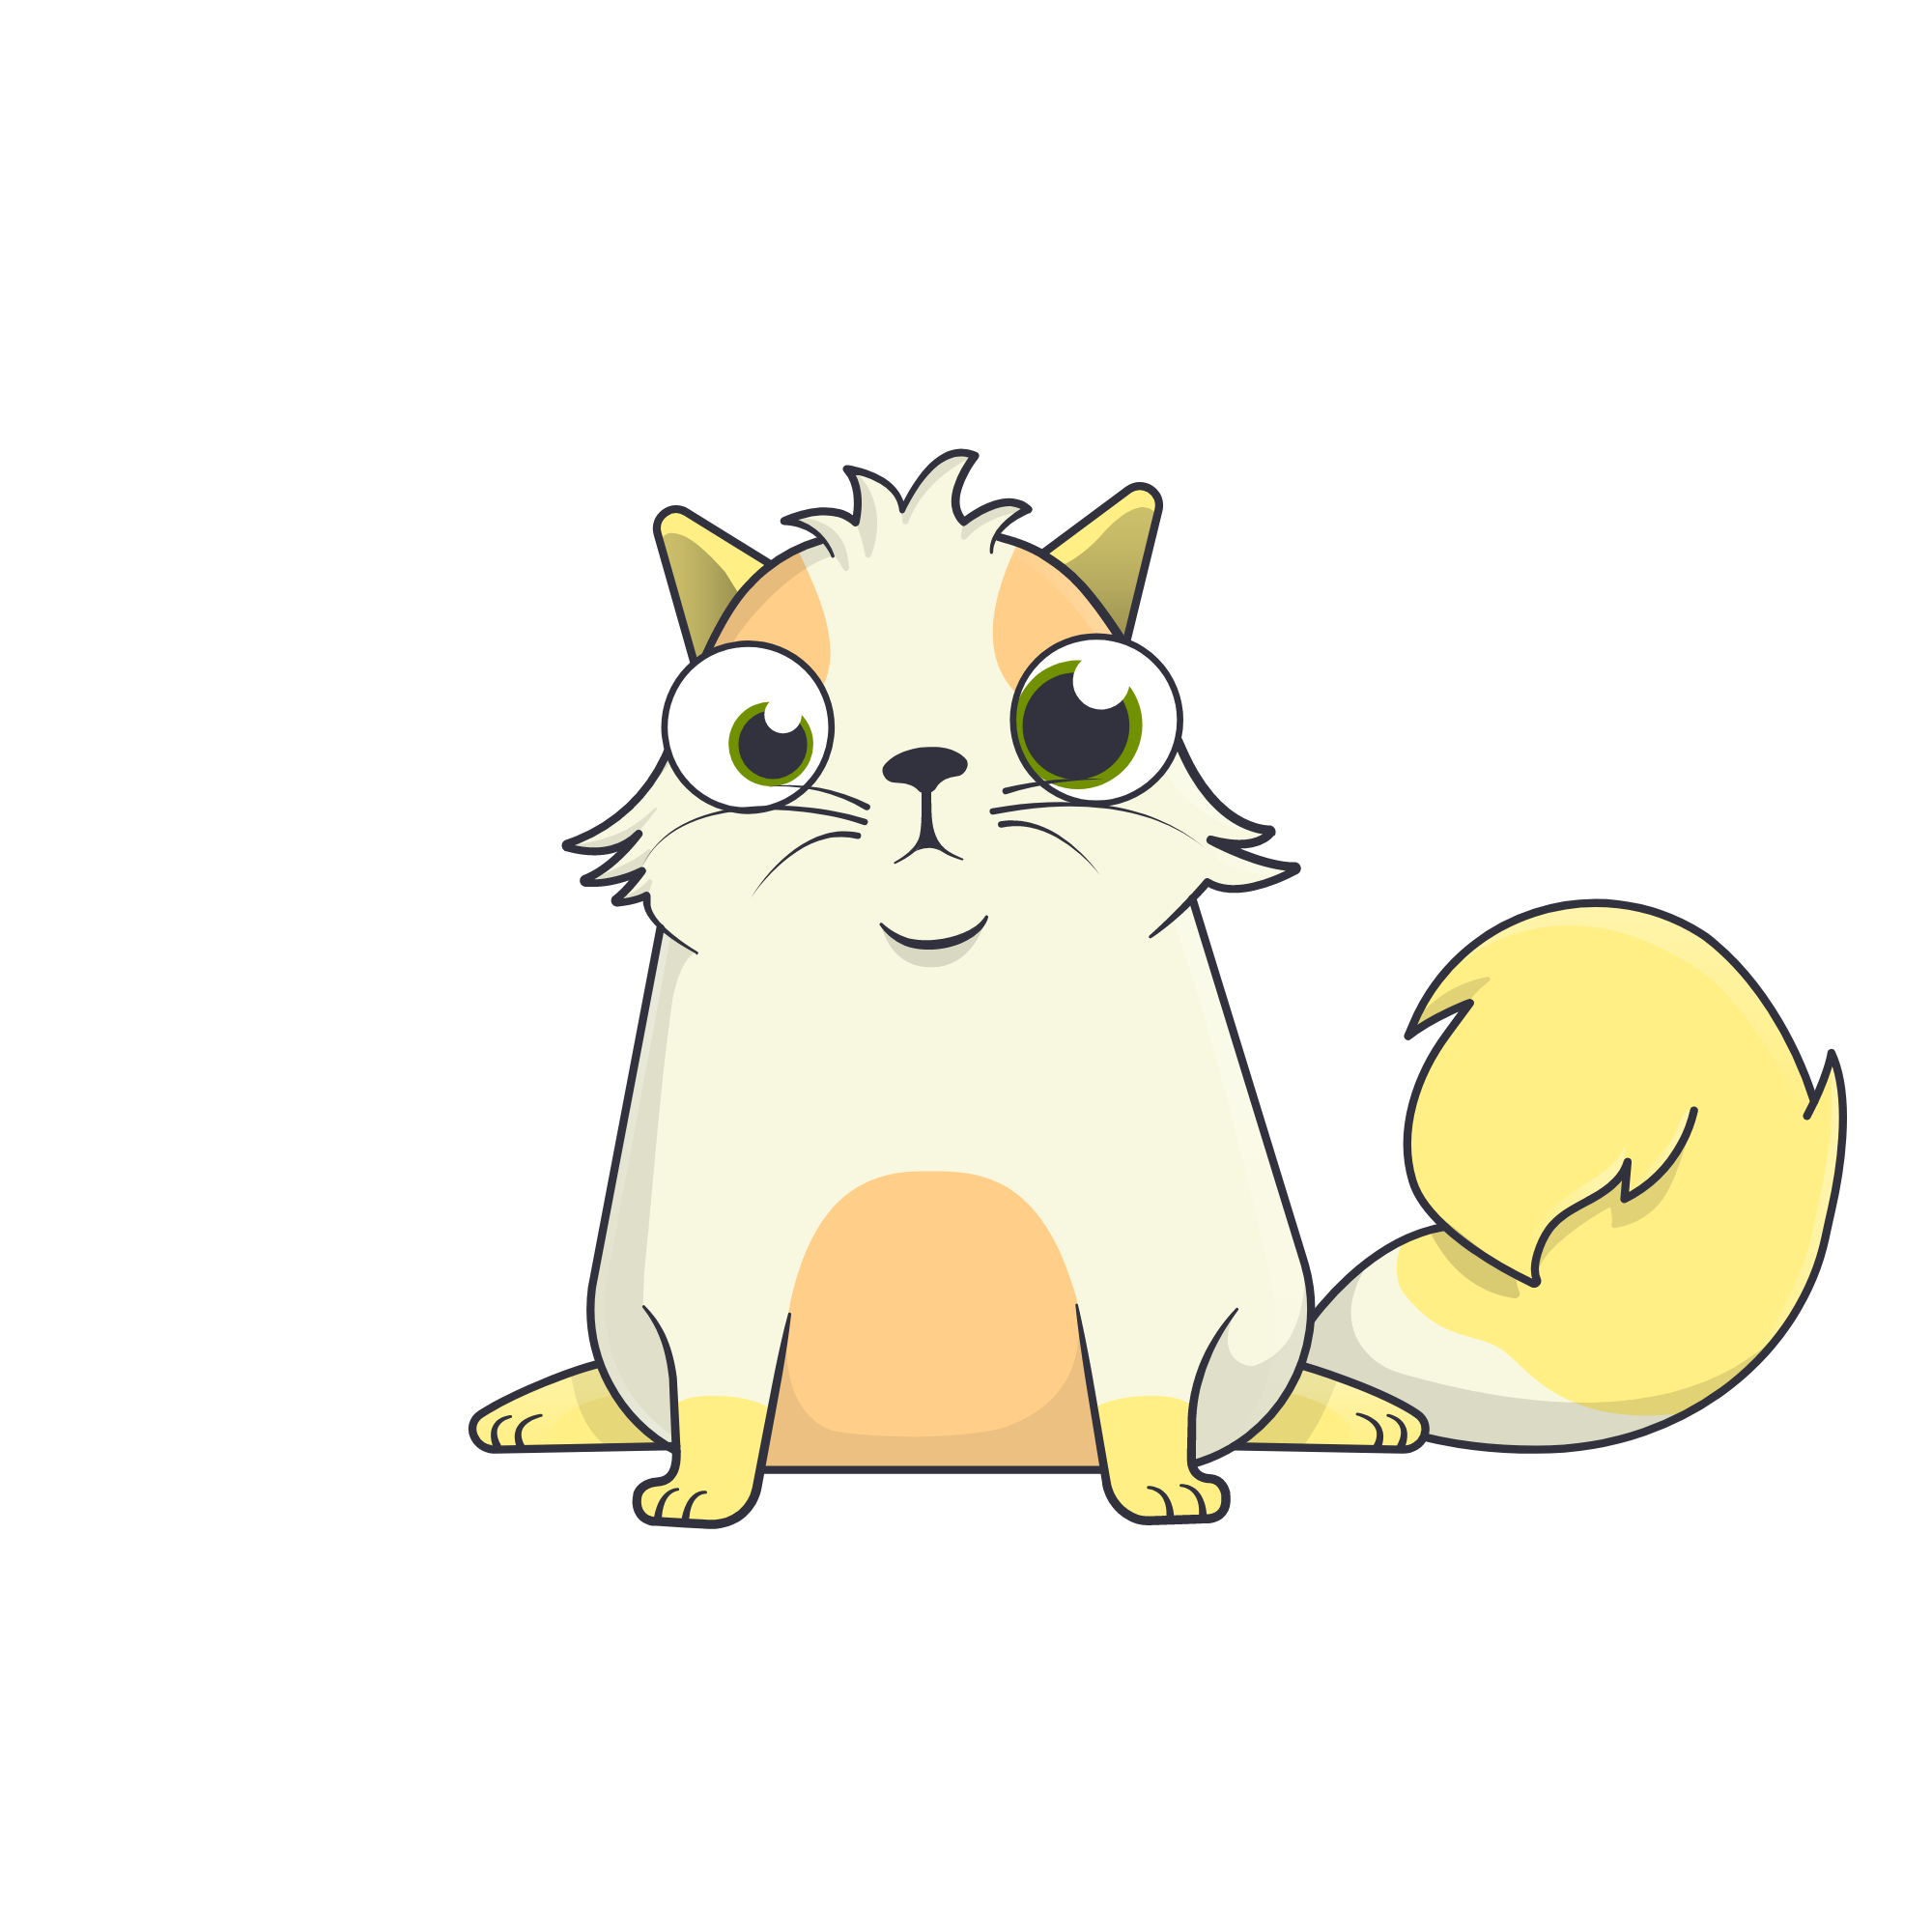 cryptokitty #900556